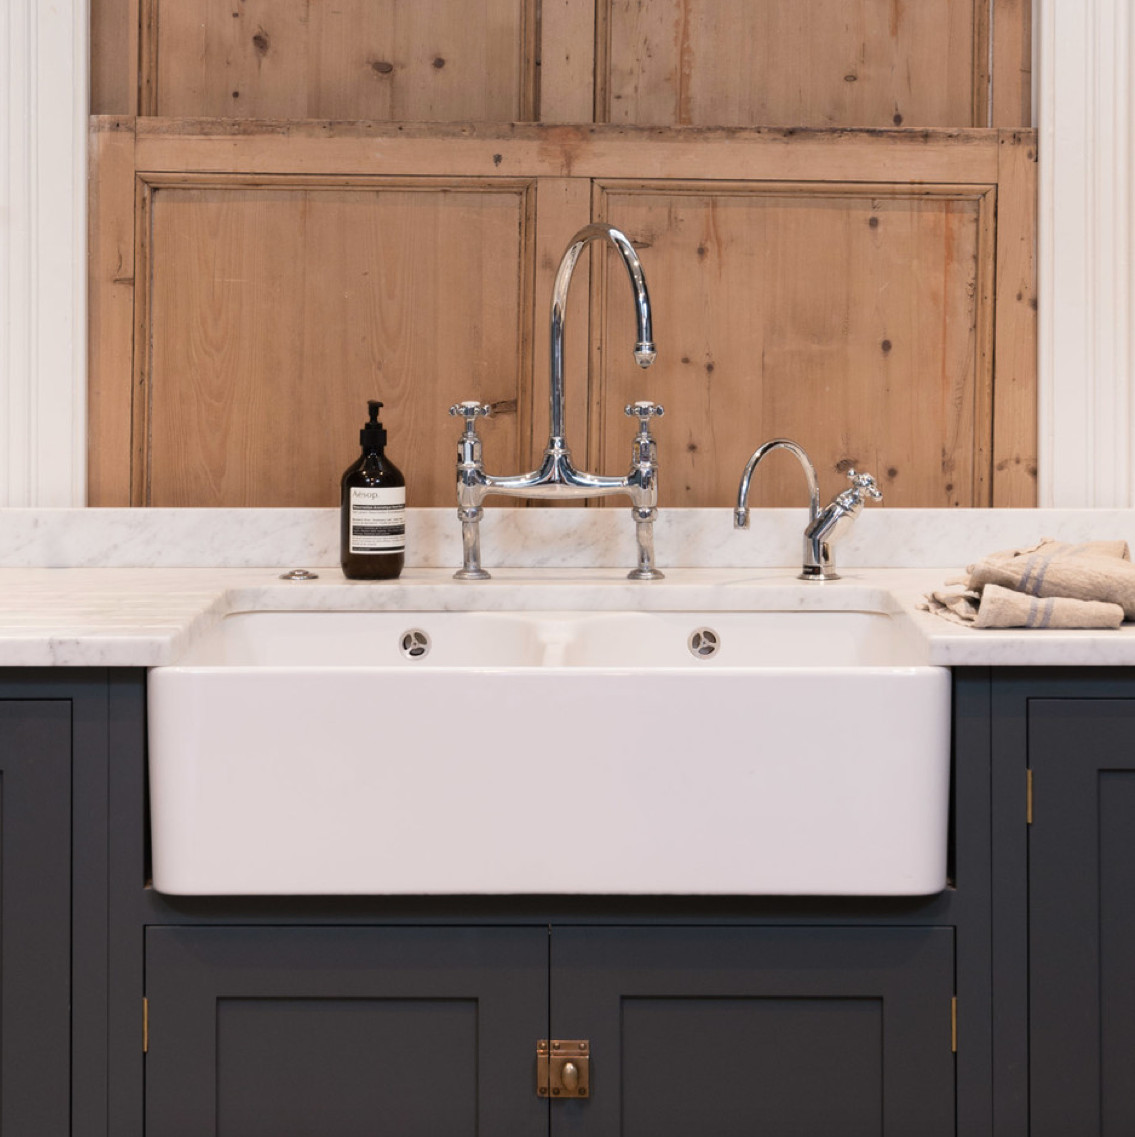 Nice deVol kitchen Double apron front sink with classic bridge faucet in a deVol kitchen with